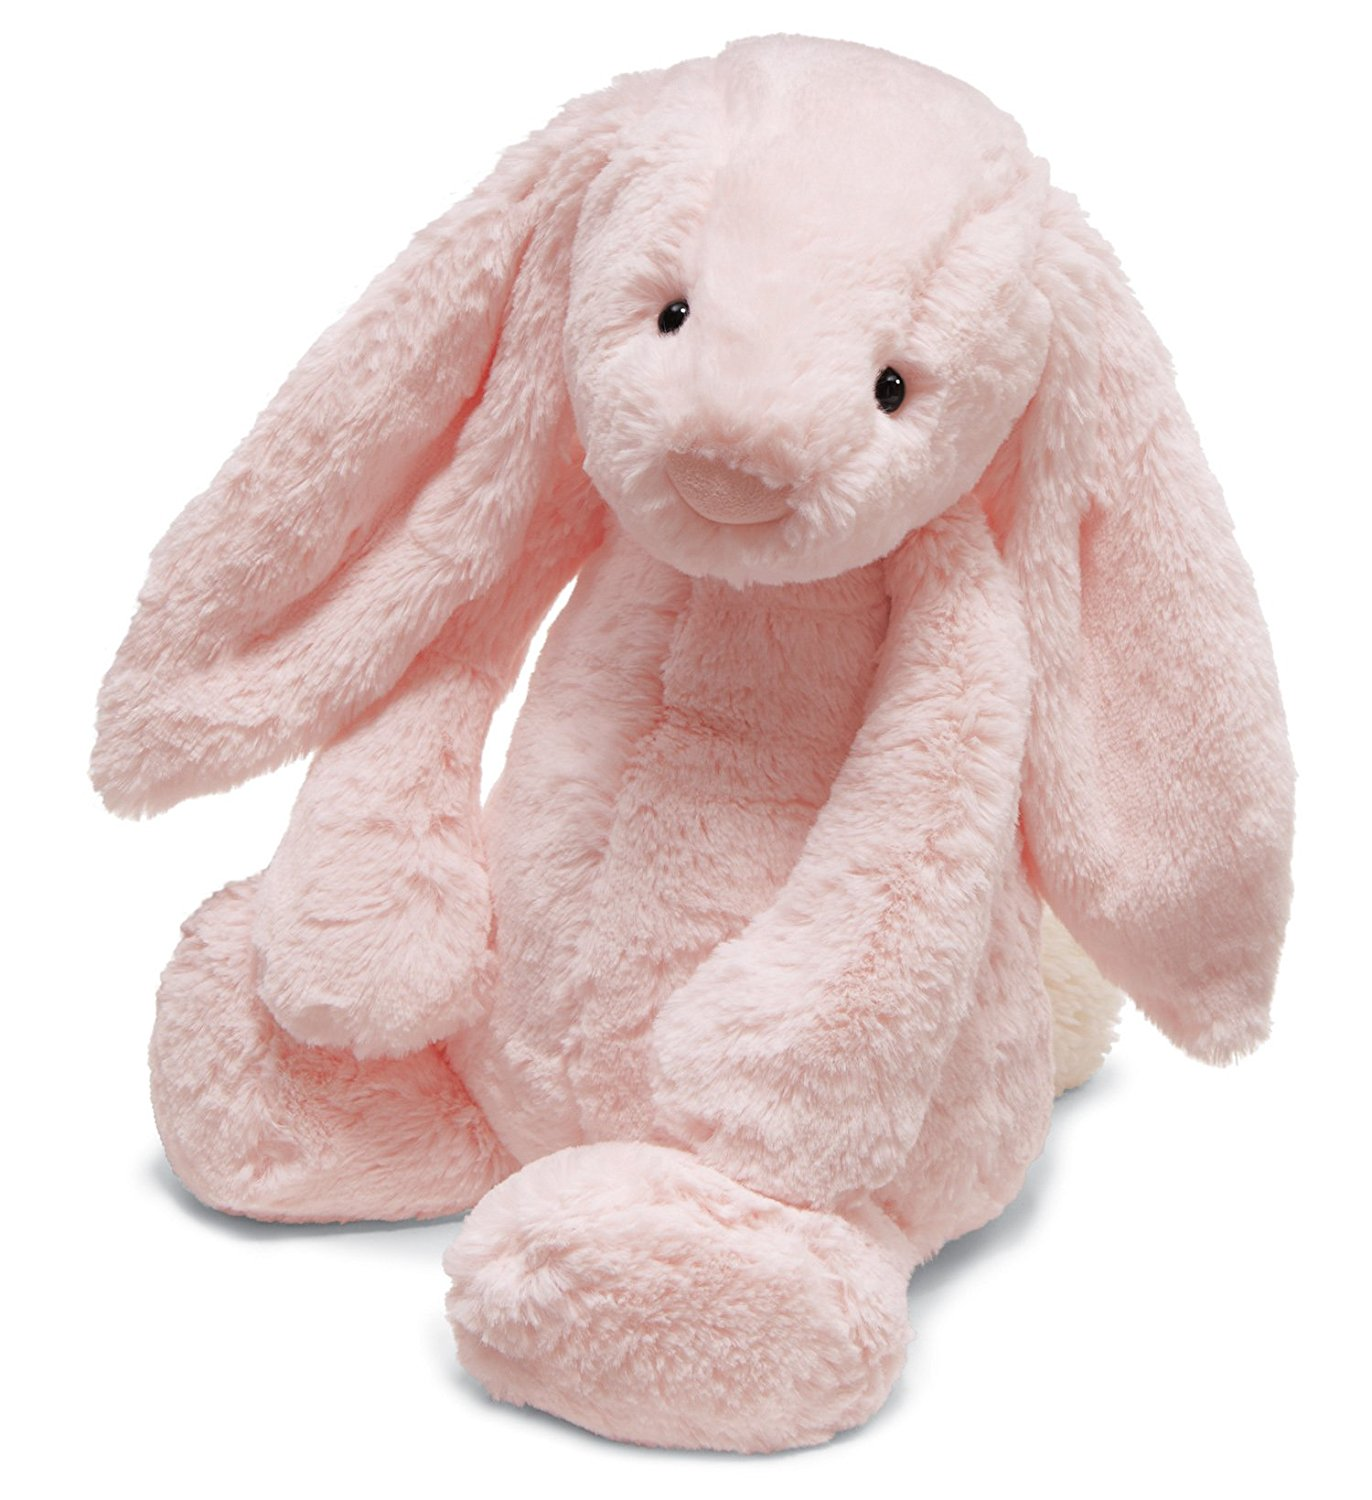 jellycat bunny rattle, best rattles, plush rattles, baby rattles